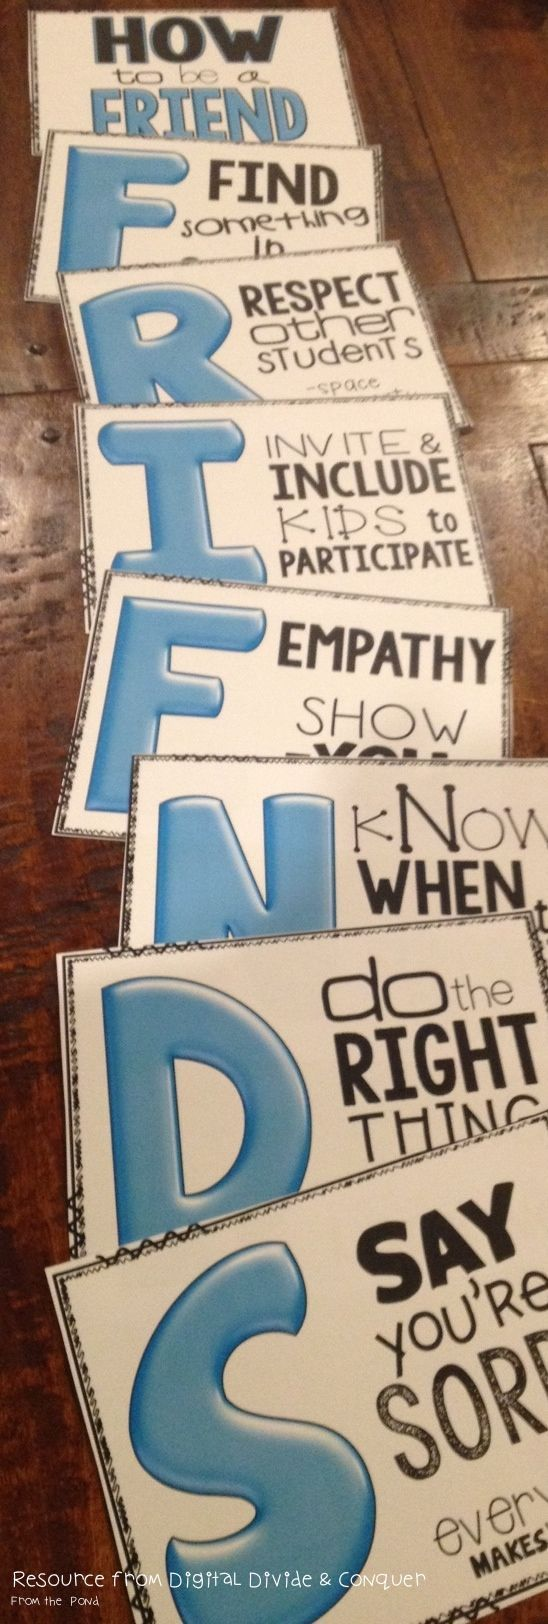 FRIEND used this acronym idea when teaching activity day girls ed well good discussion